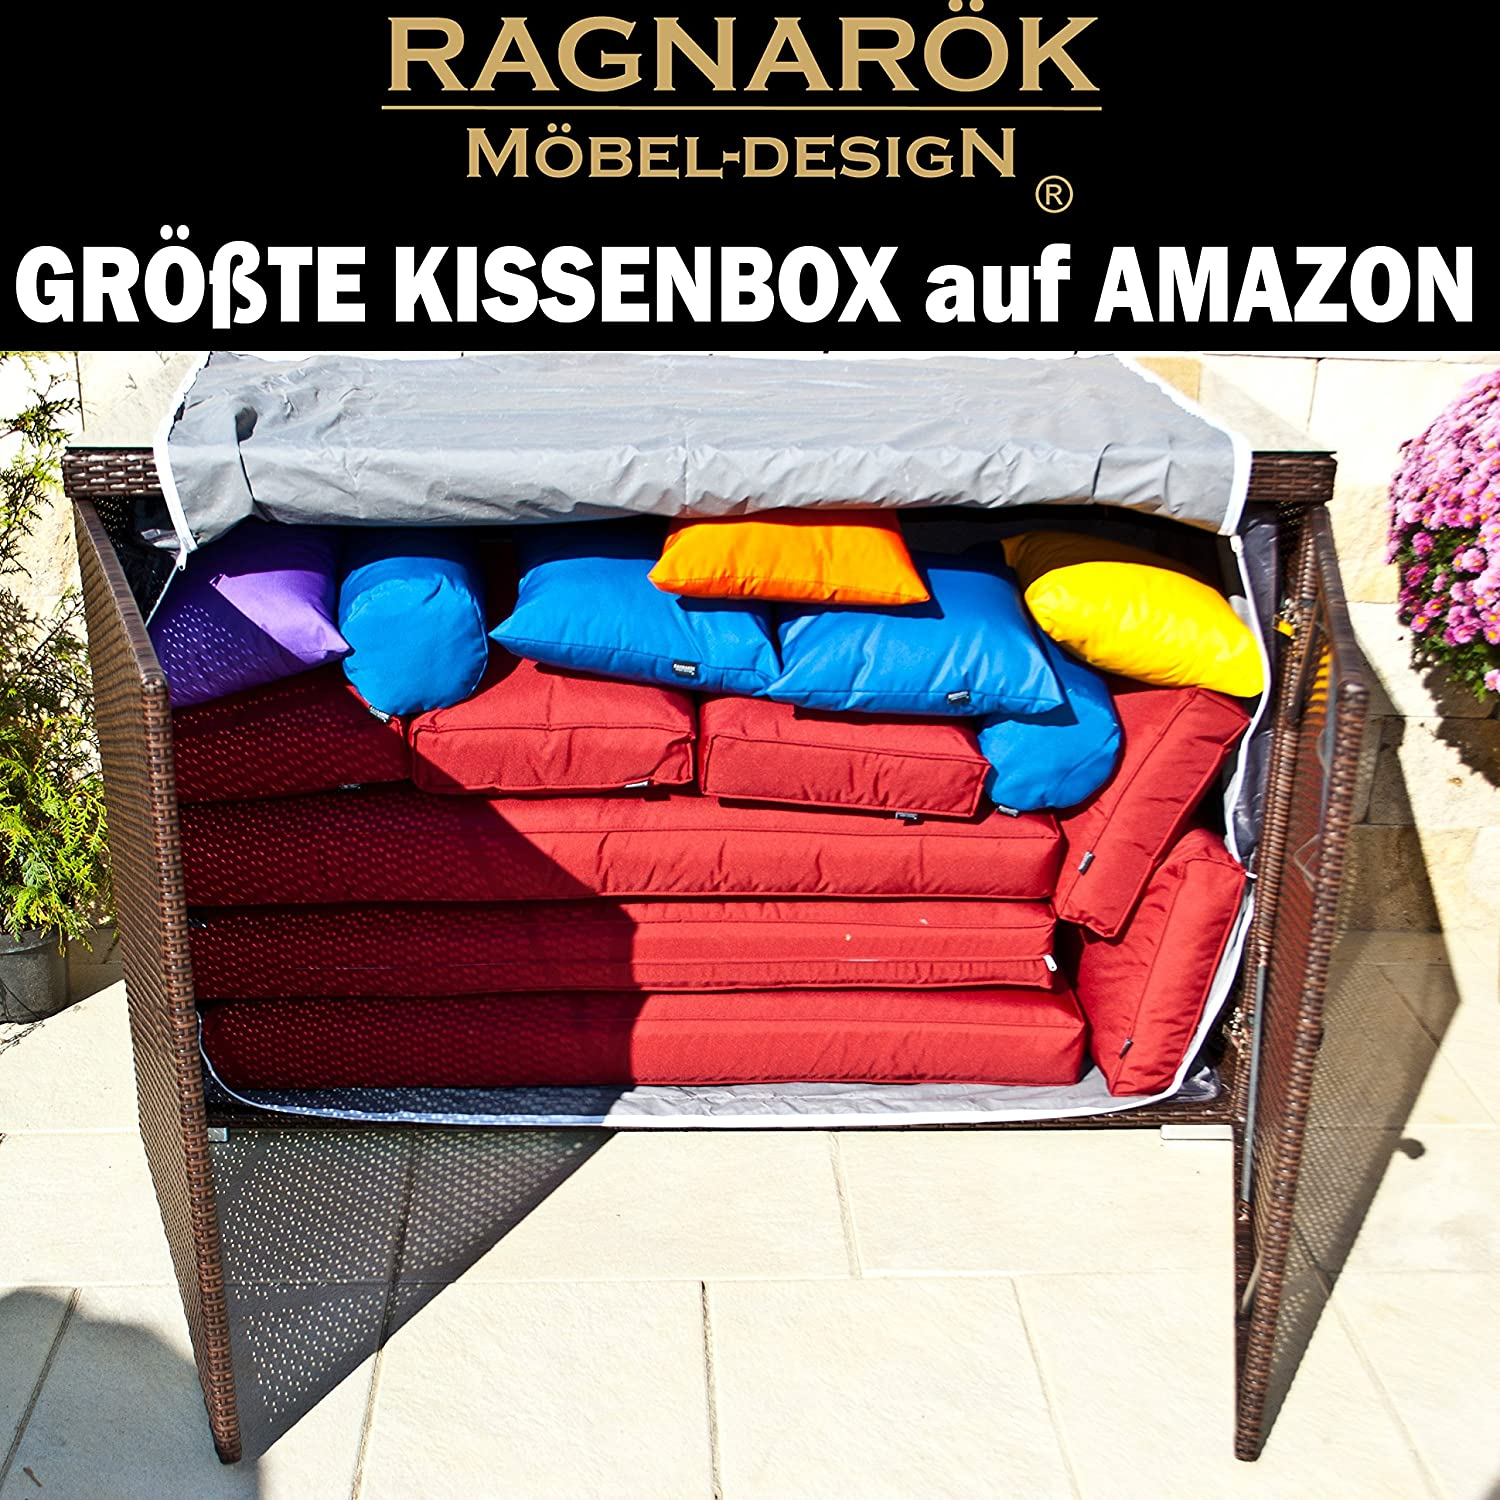 xxxl polyrattan kissenbox gr te kissenbox auf amazon deutsche marke eignene produktion 7. Black Bedroom Furniture Sets. Home Design Ideas